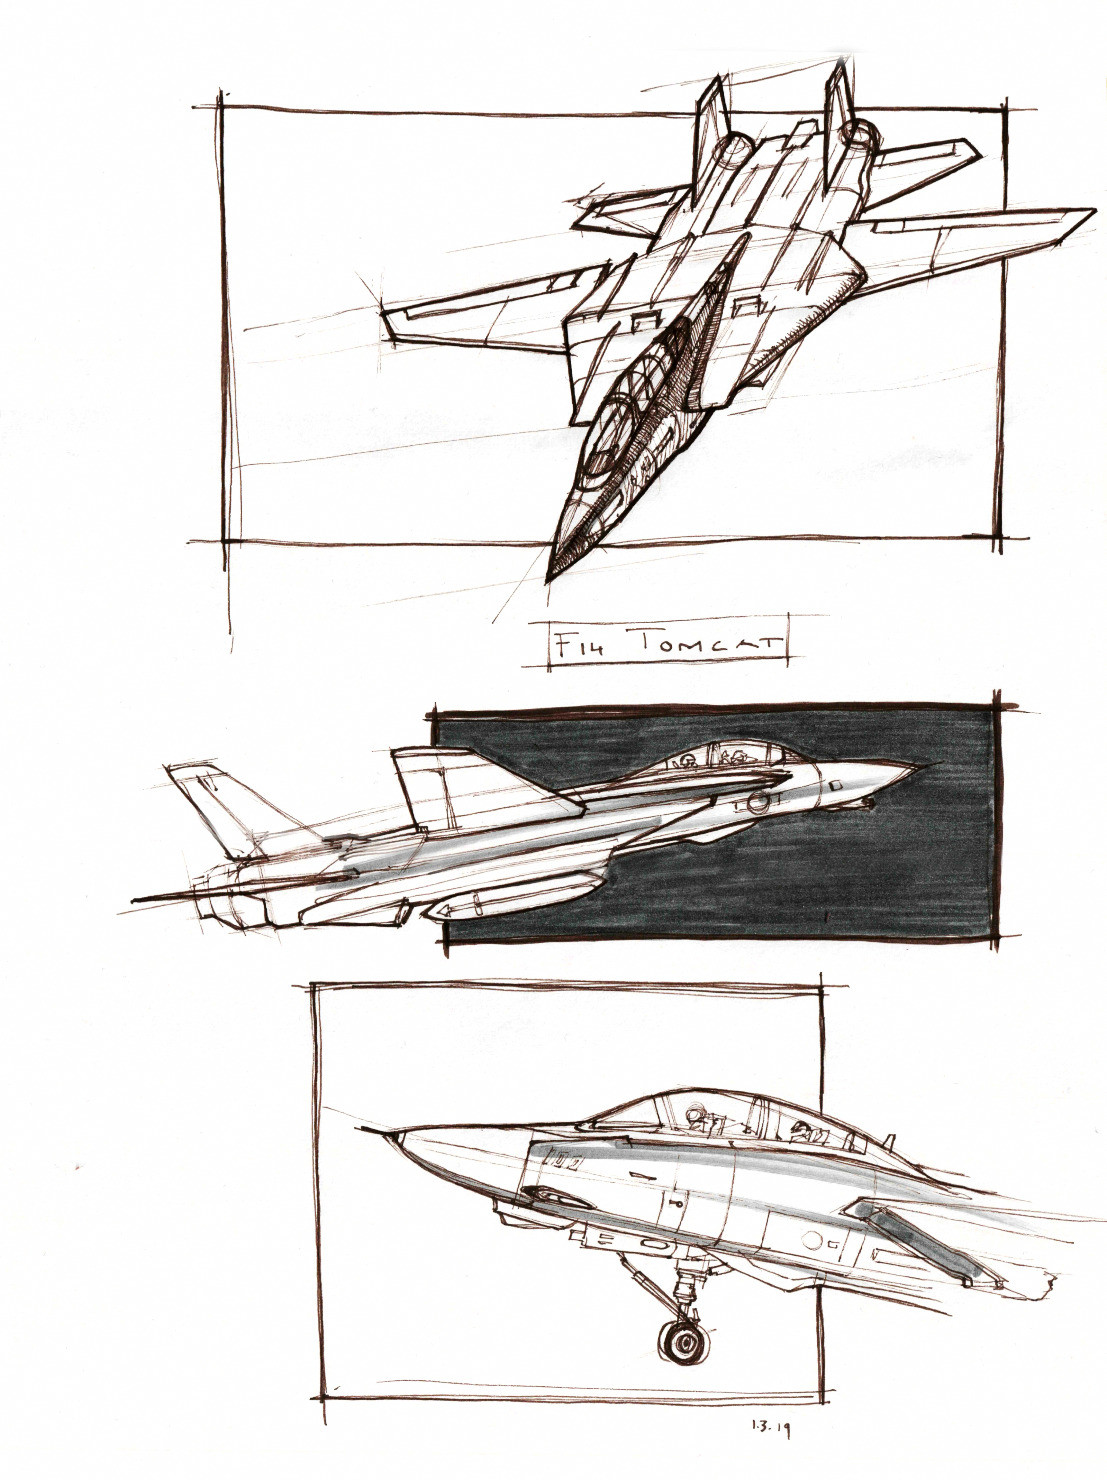 hight resolution of brown ink sketches of an f 14 tomcat jet plane